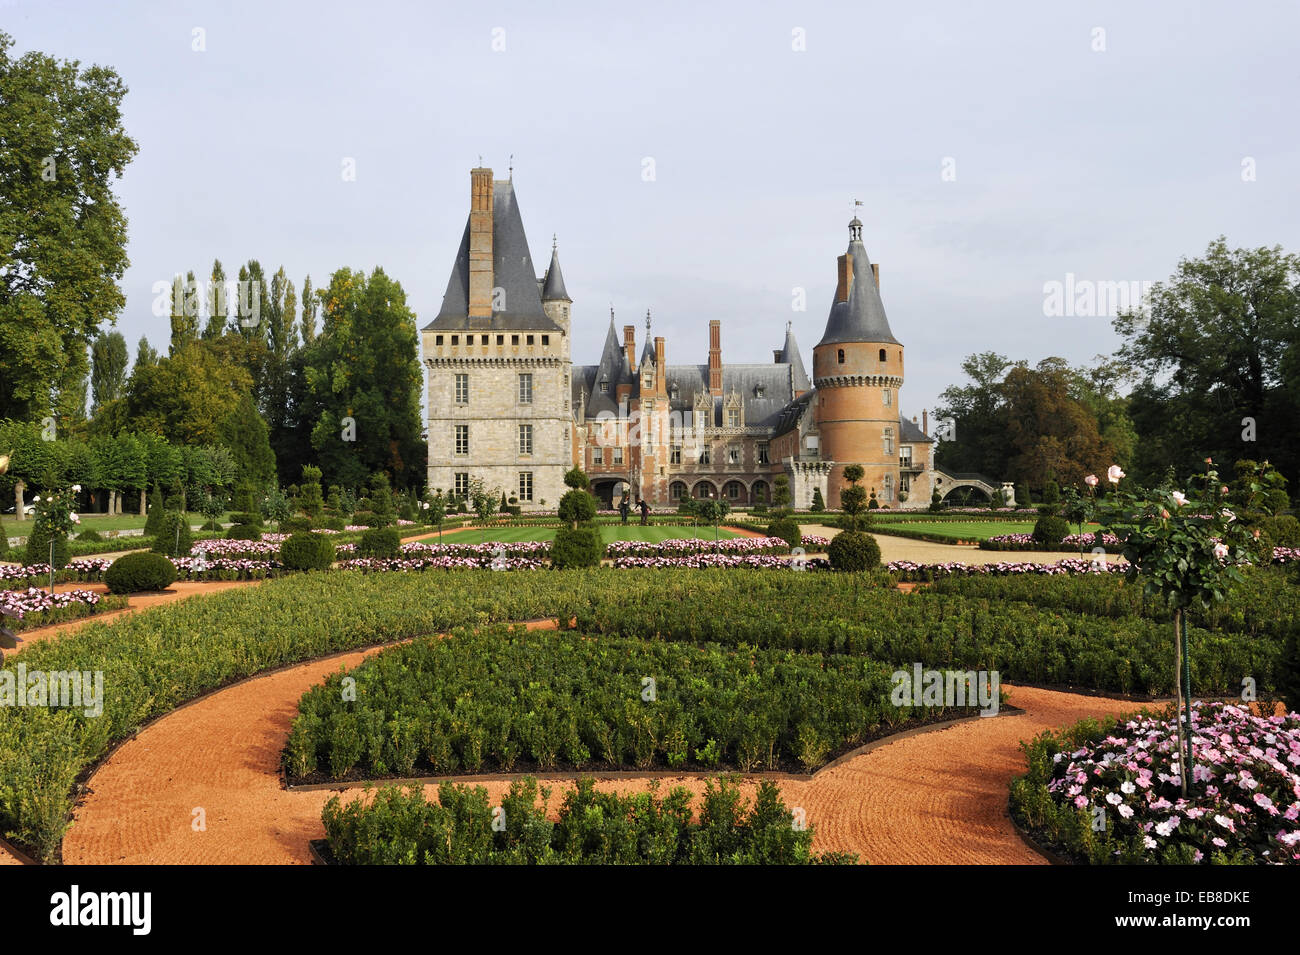 French formal garden style laid out by the master gardener Patrick Pottier according to the plans Andre Le Notre - Stock Image